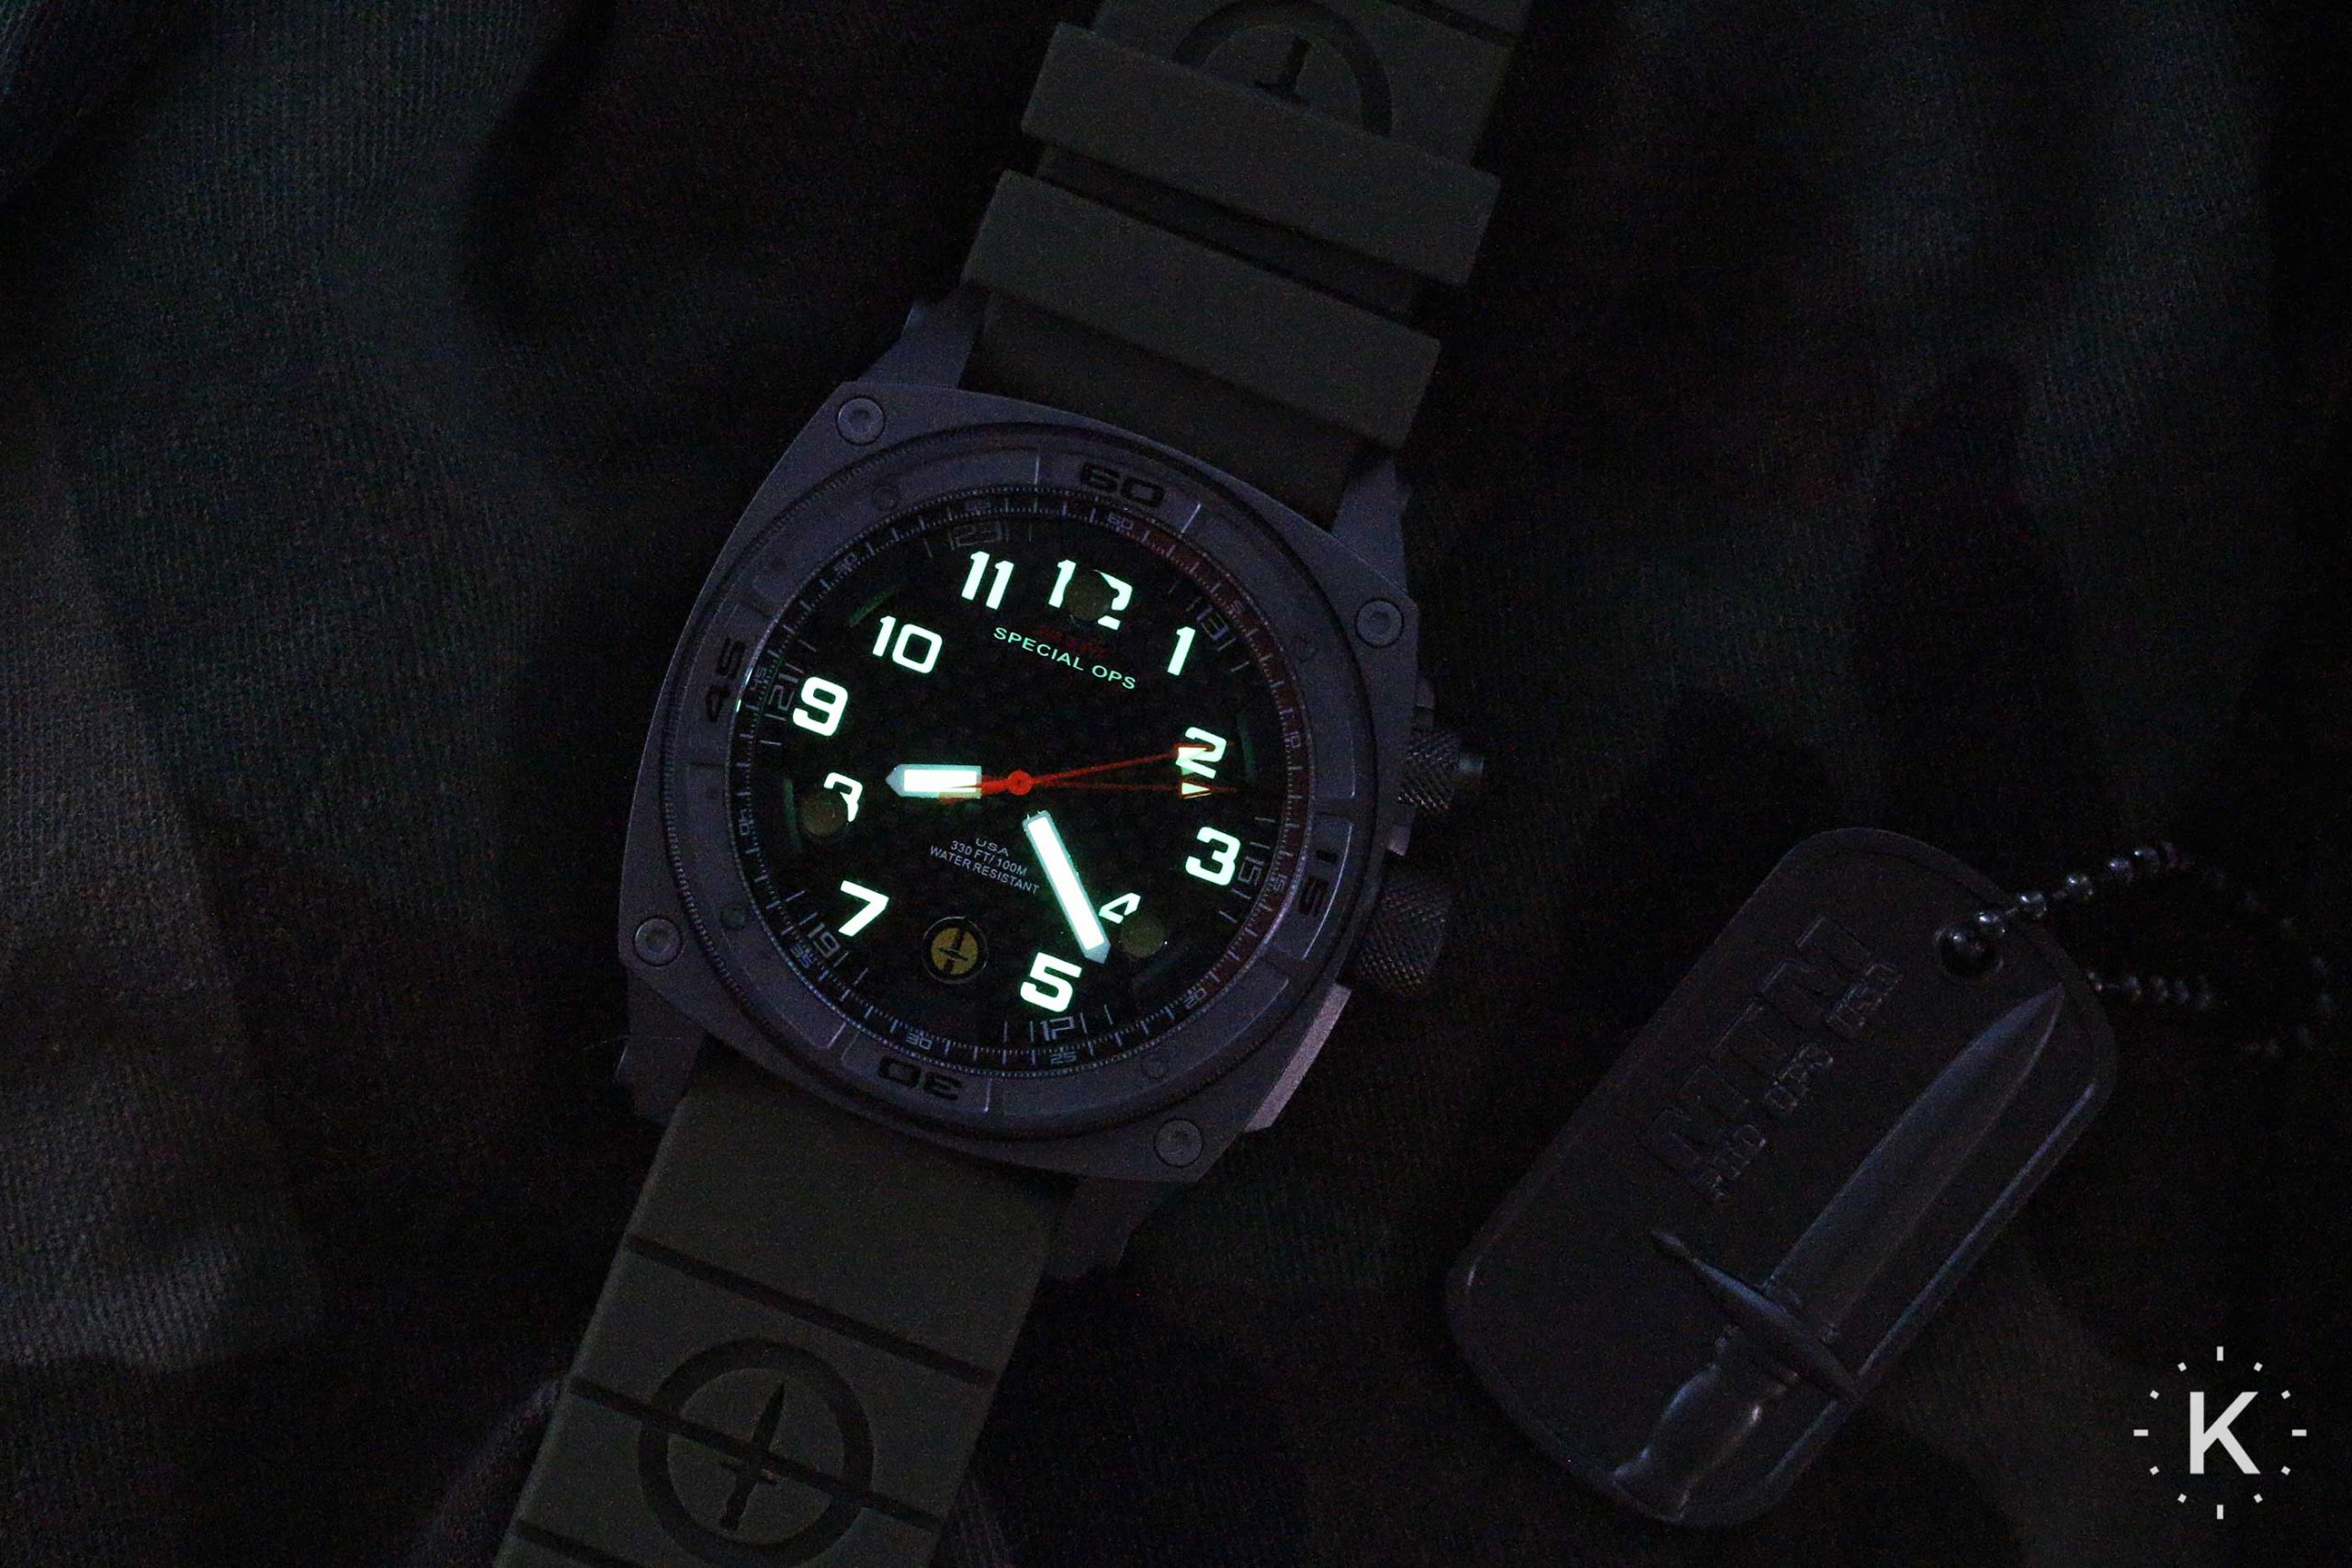 Mtm Special Ops Falcon Watch Lumeshot